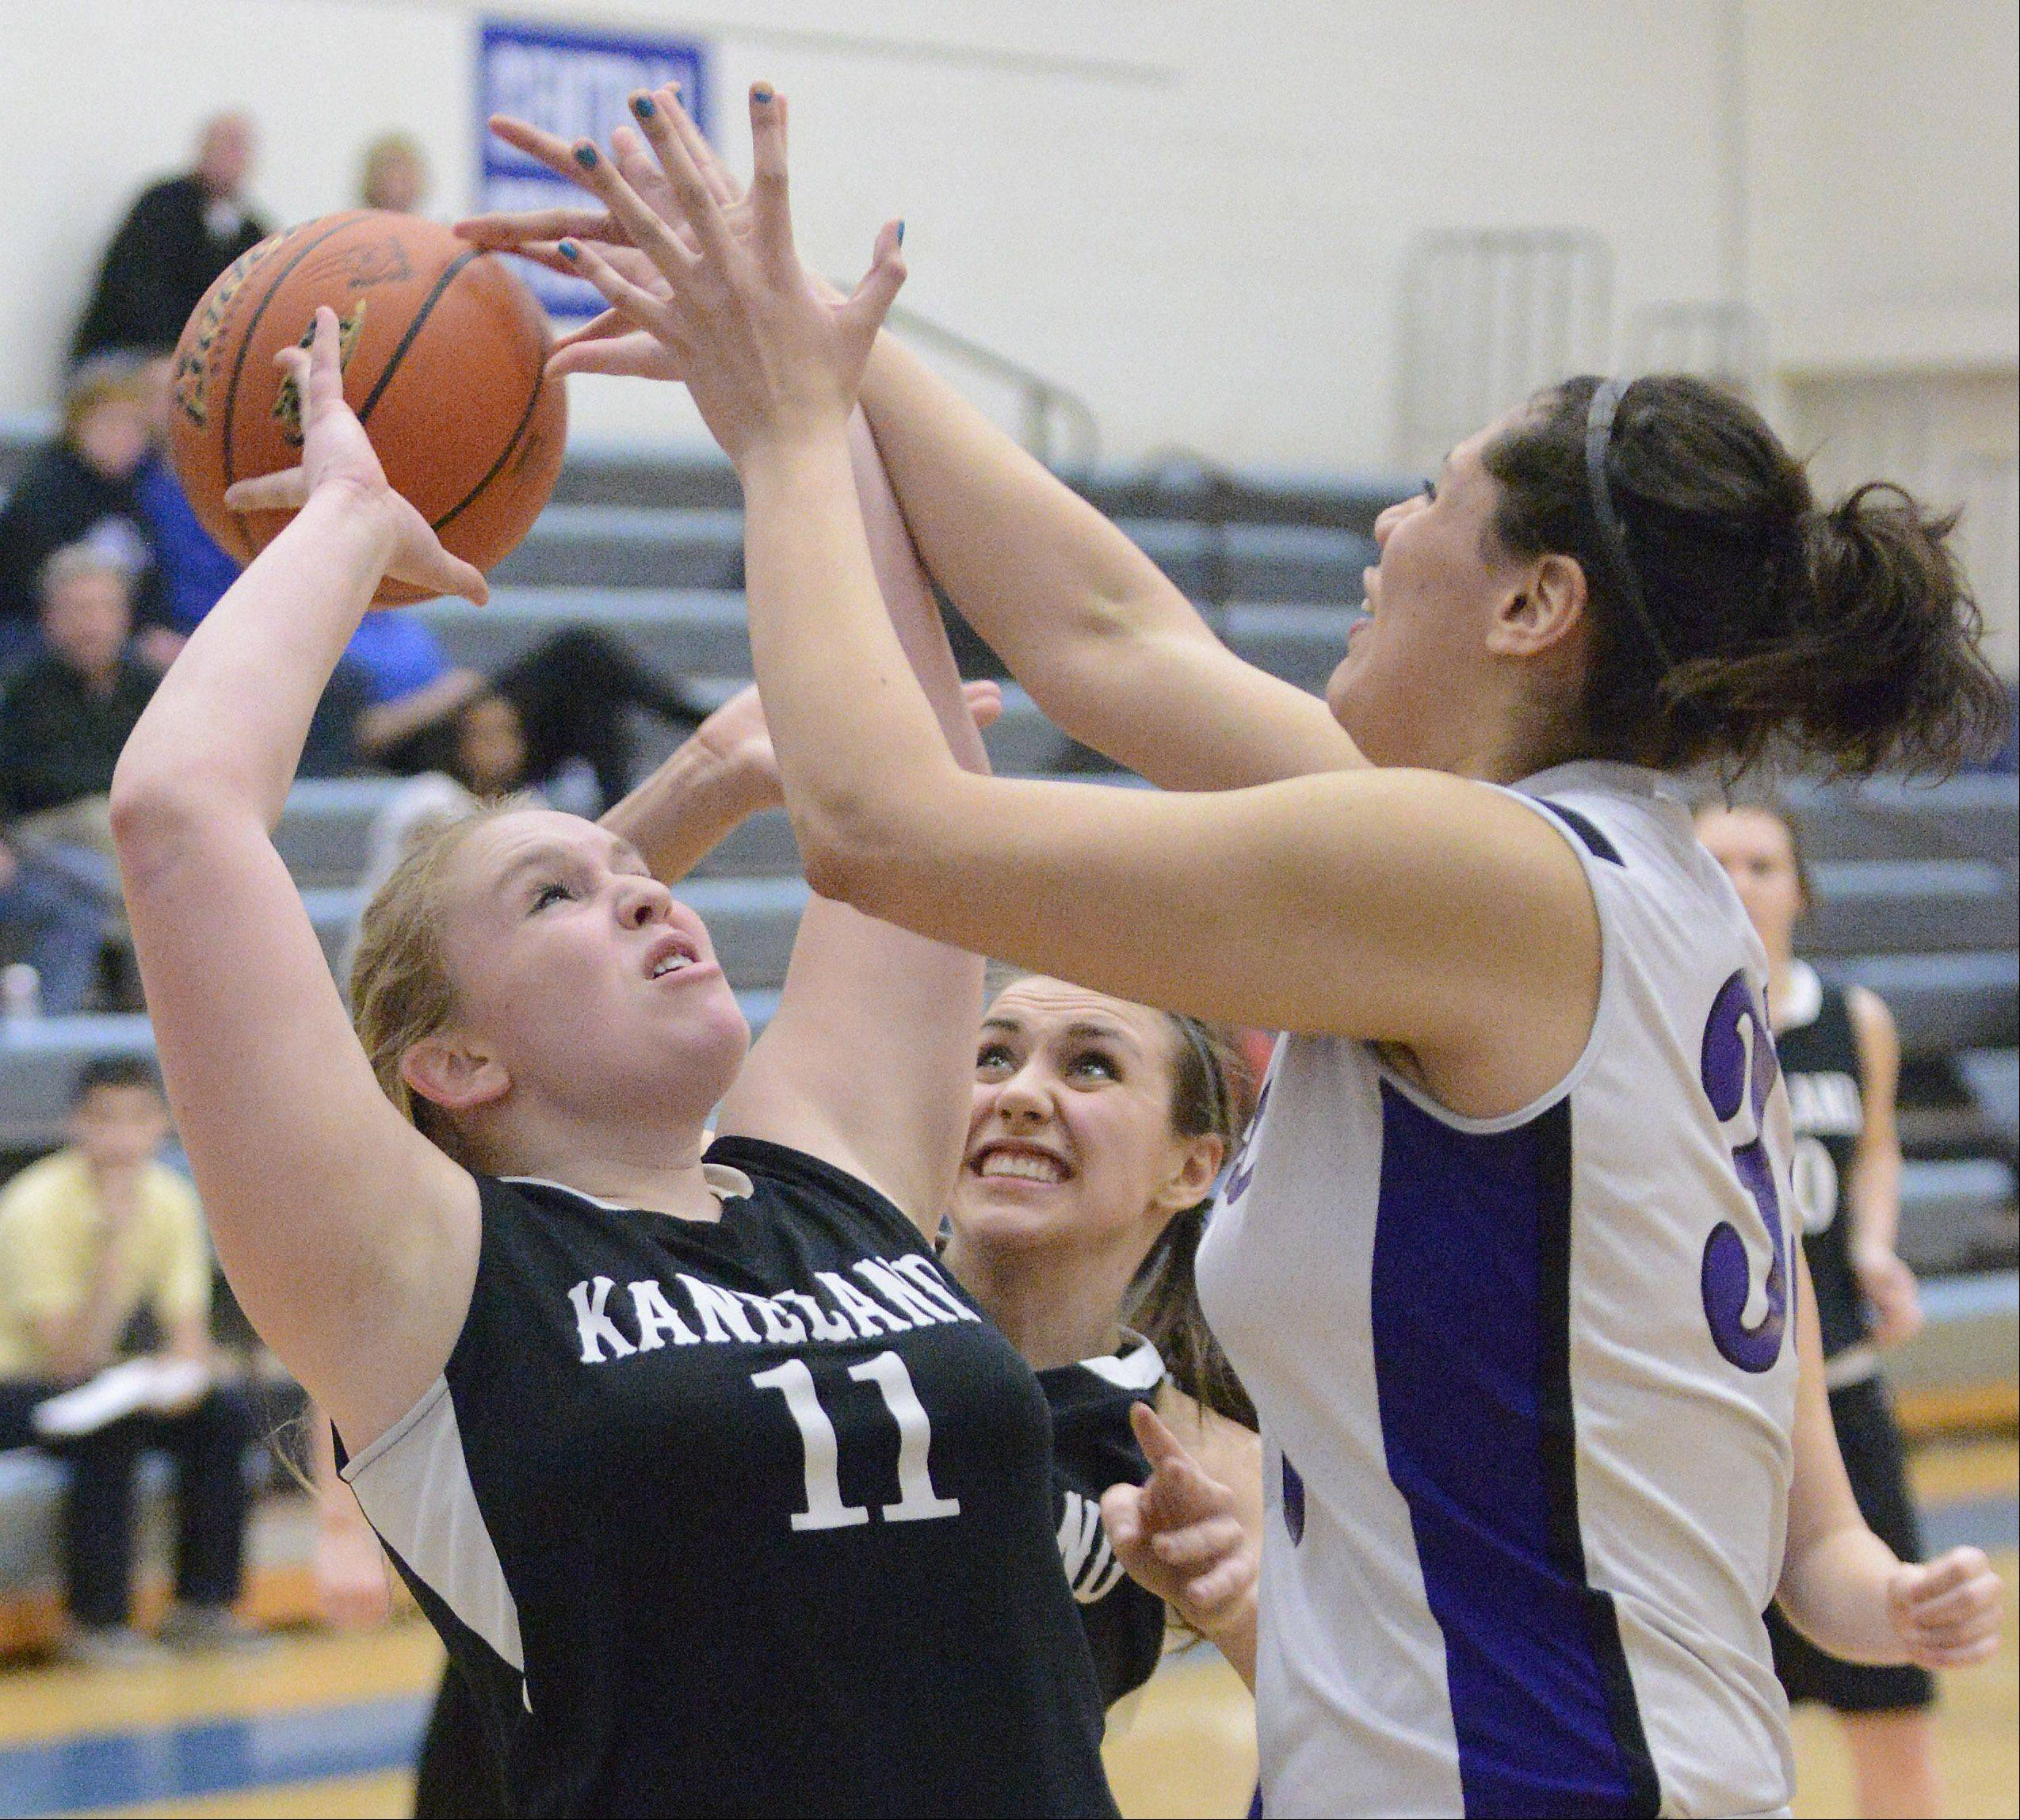 Images from the Kaneland vs. Plano girls basketball game Wednesday, February 13, 2013.